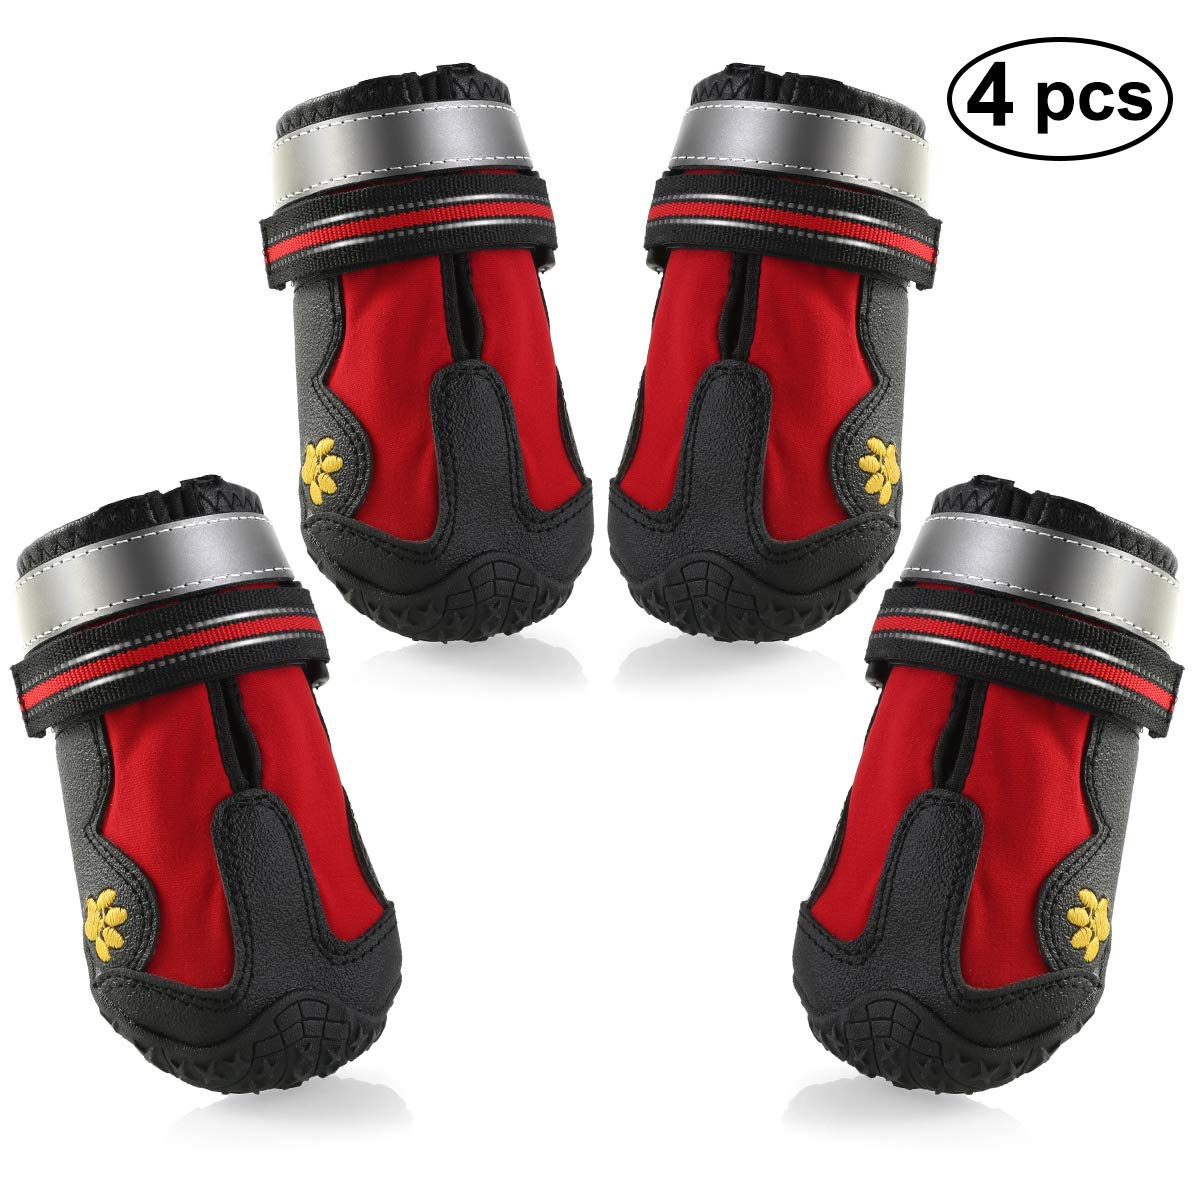 Tabpole Dog Boots Waterproof Pet Mesh Shoes, Breathable Dog Shoes Paw Protectors with Reflective and Rugged Anti-Slip Sole Red 4PCS